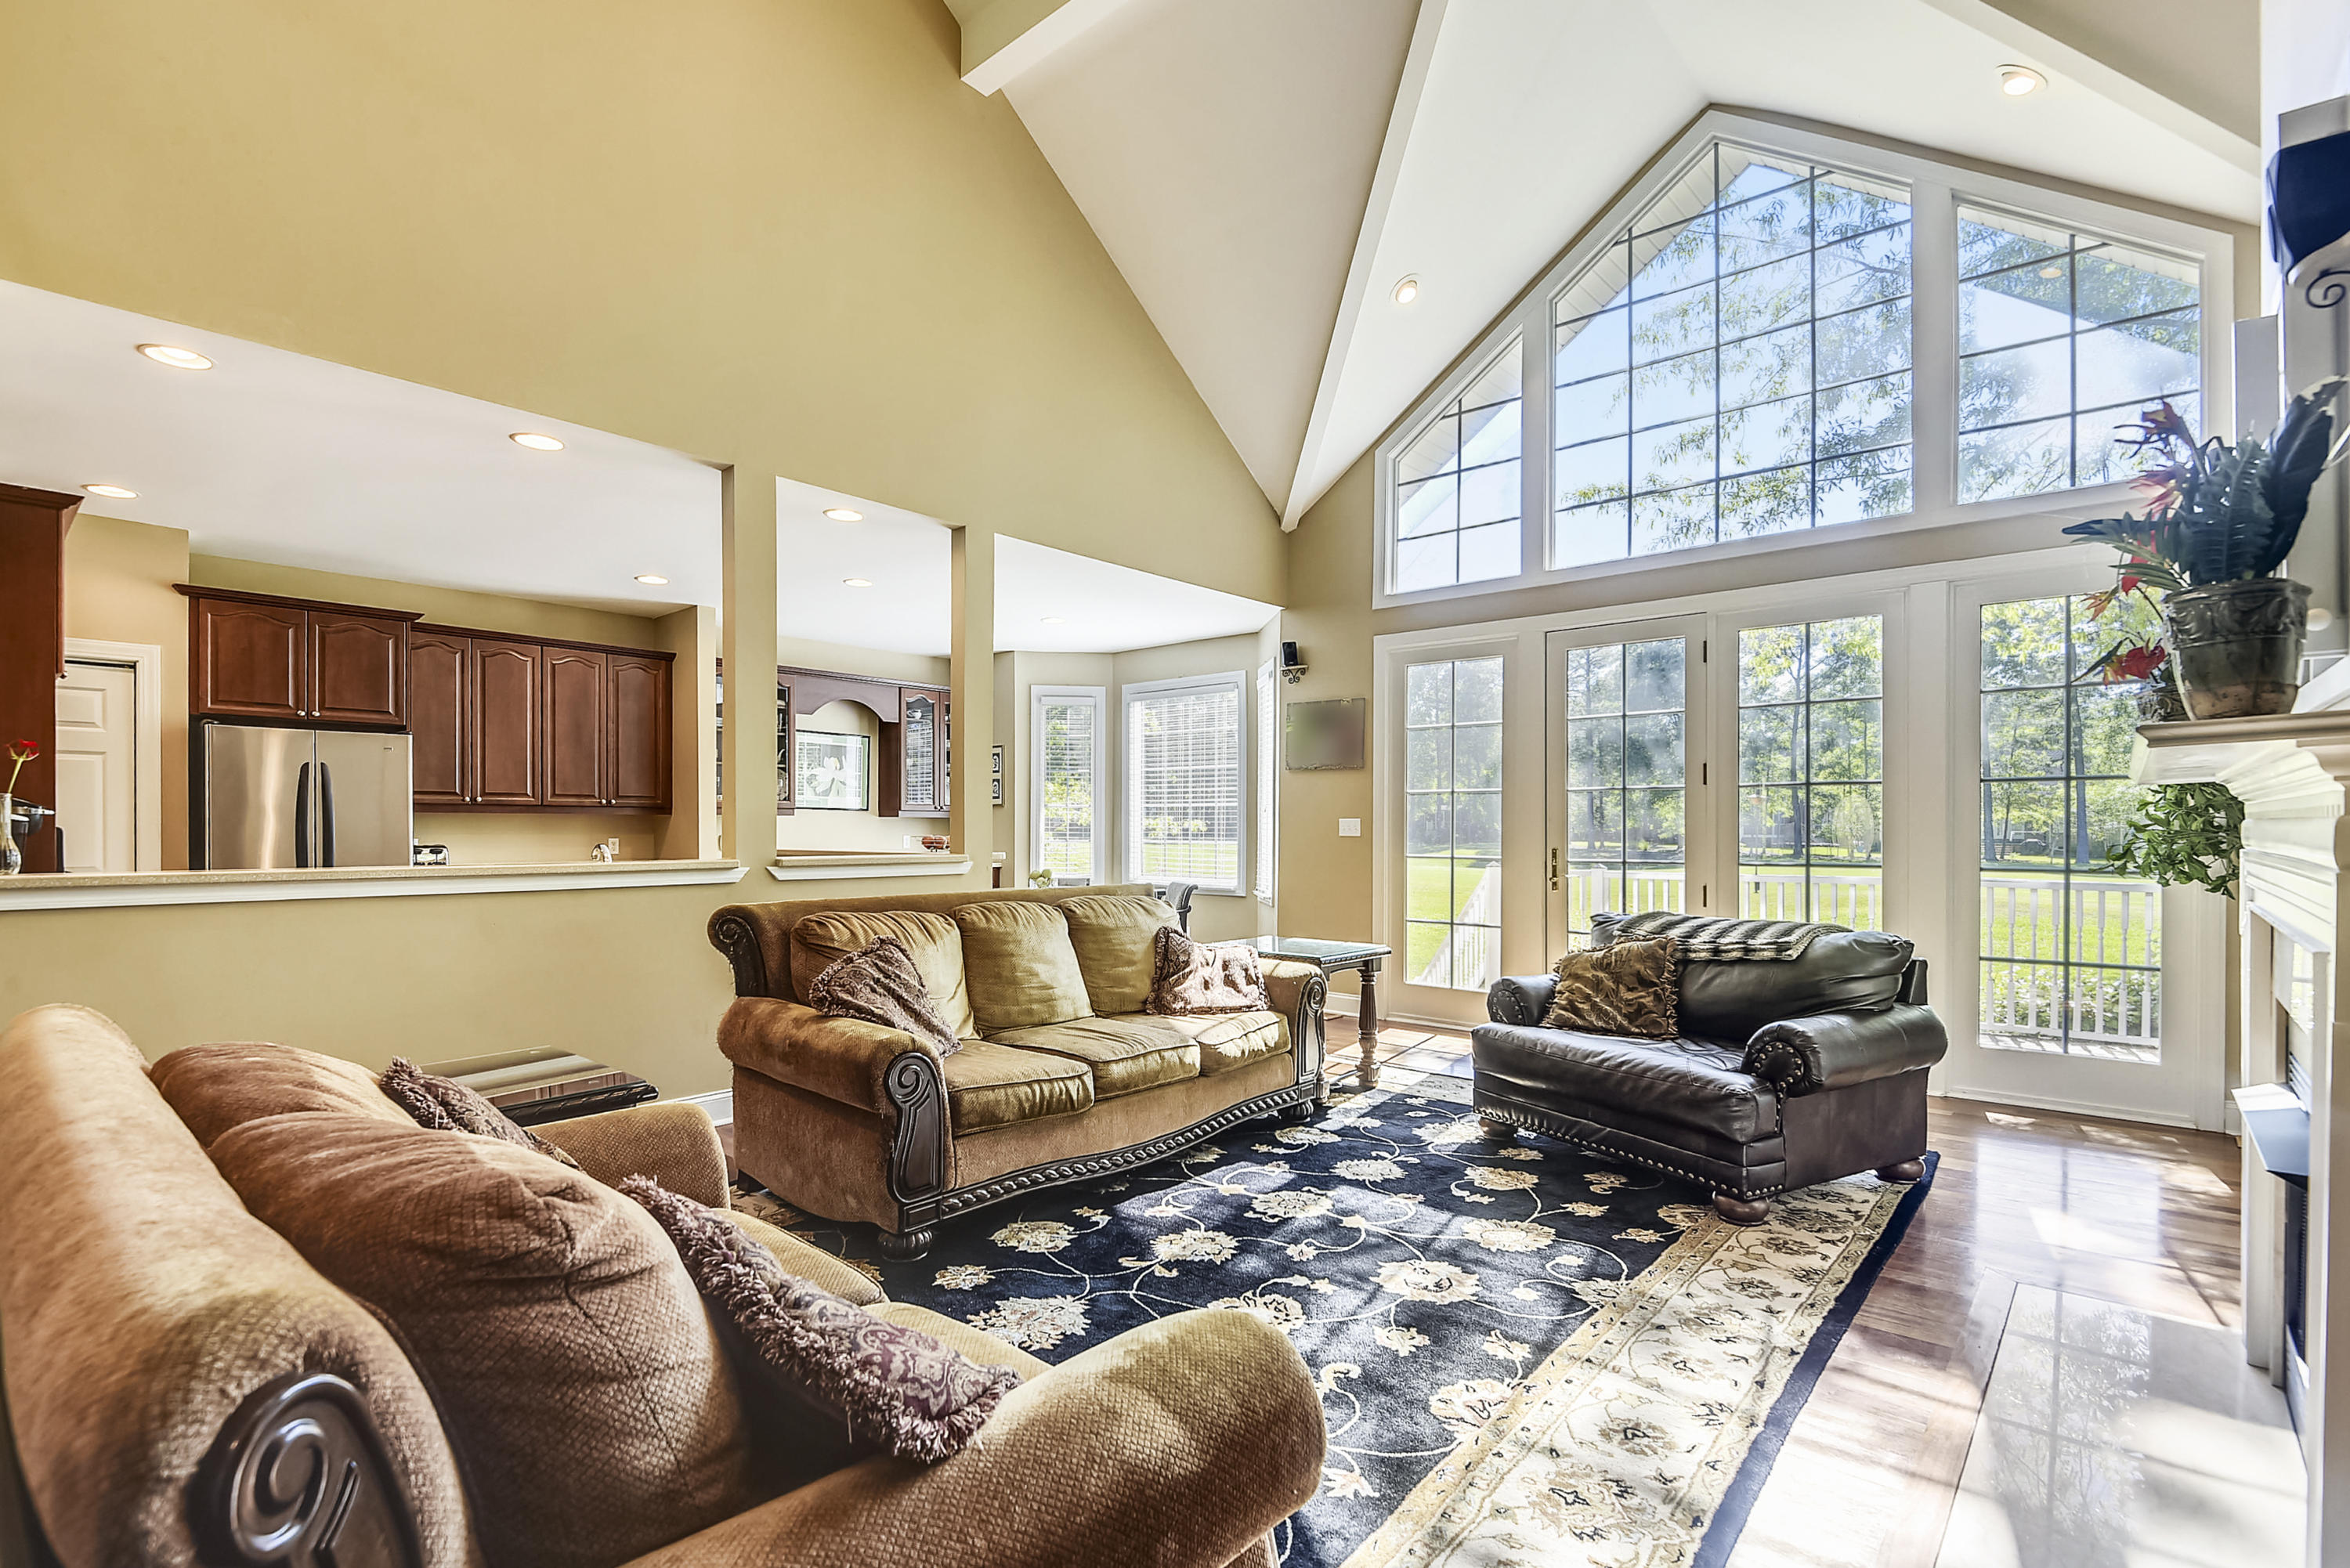 Coosaw Creek Country Club Homes For Sale - 8855 Fairway Woods, North Charleston, SC - 6